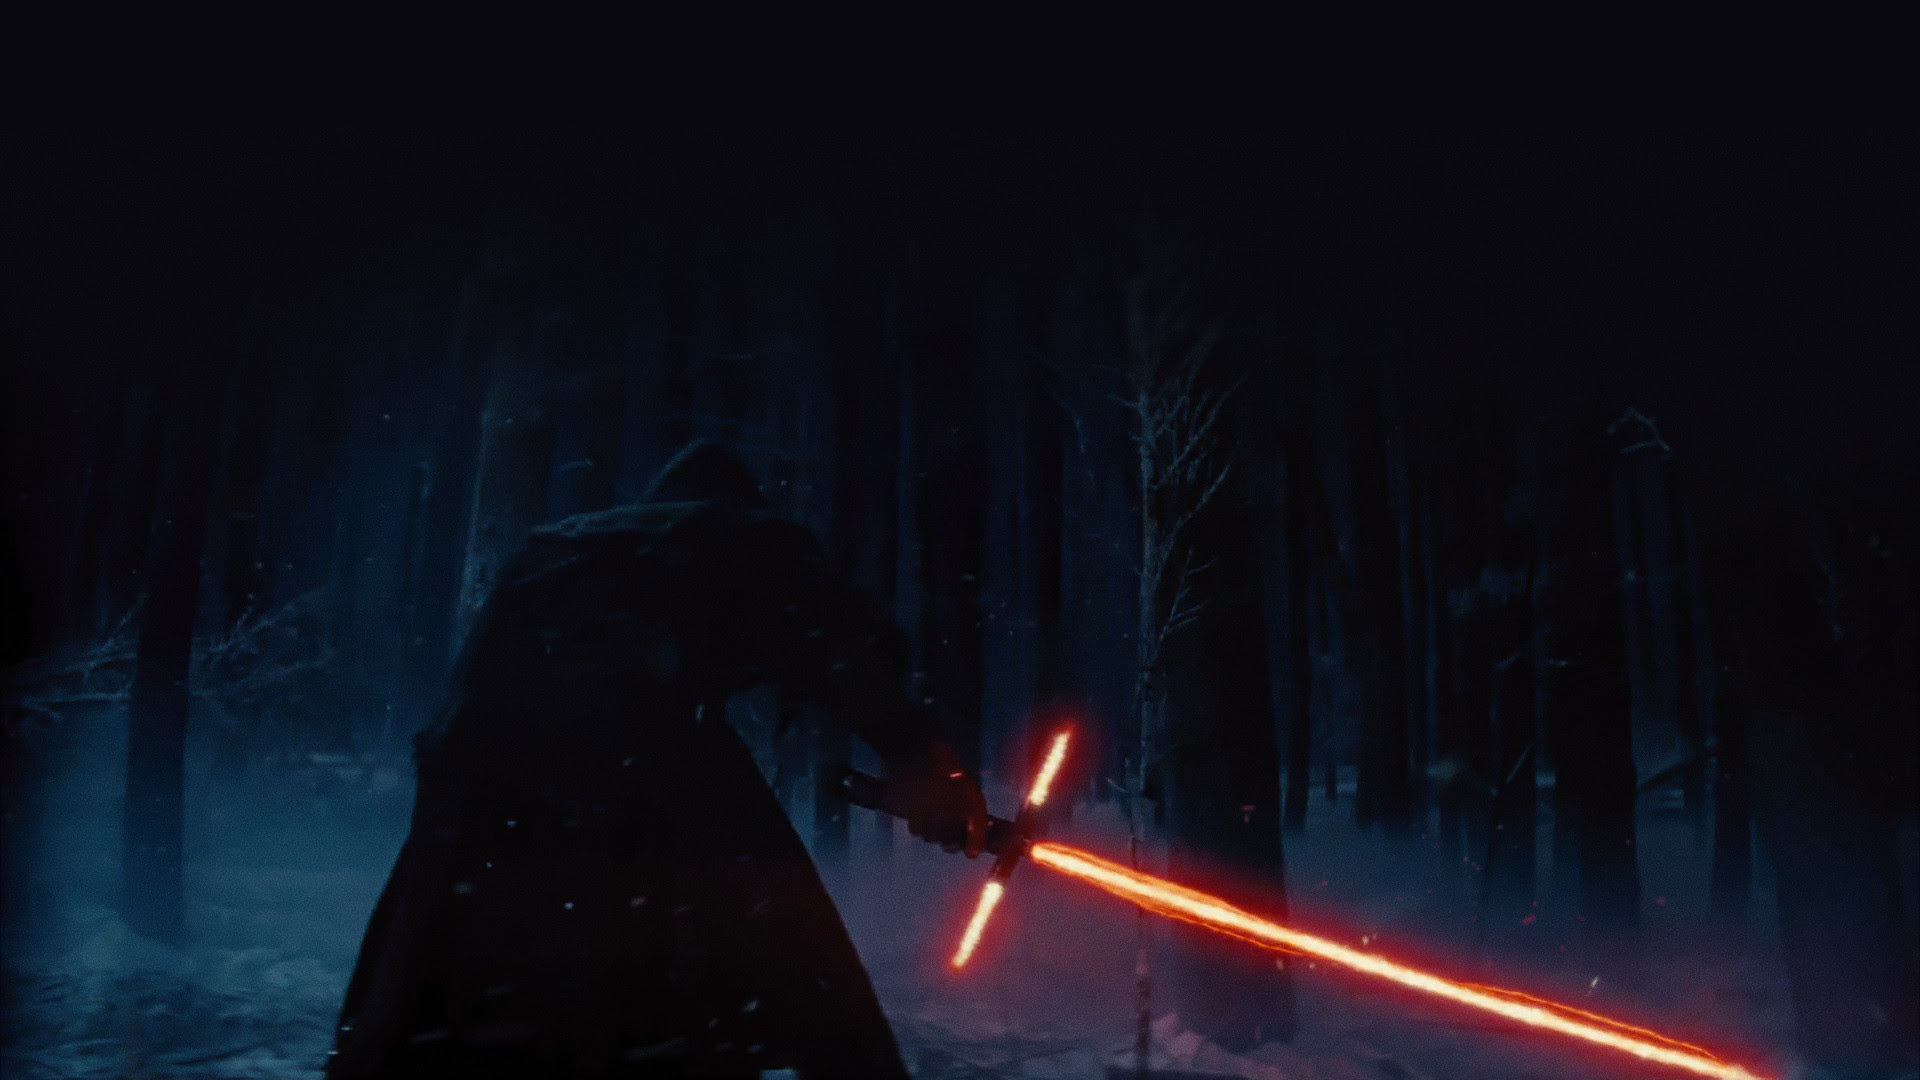 Star Wars Dark Side Wallpaper 70 Images